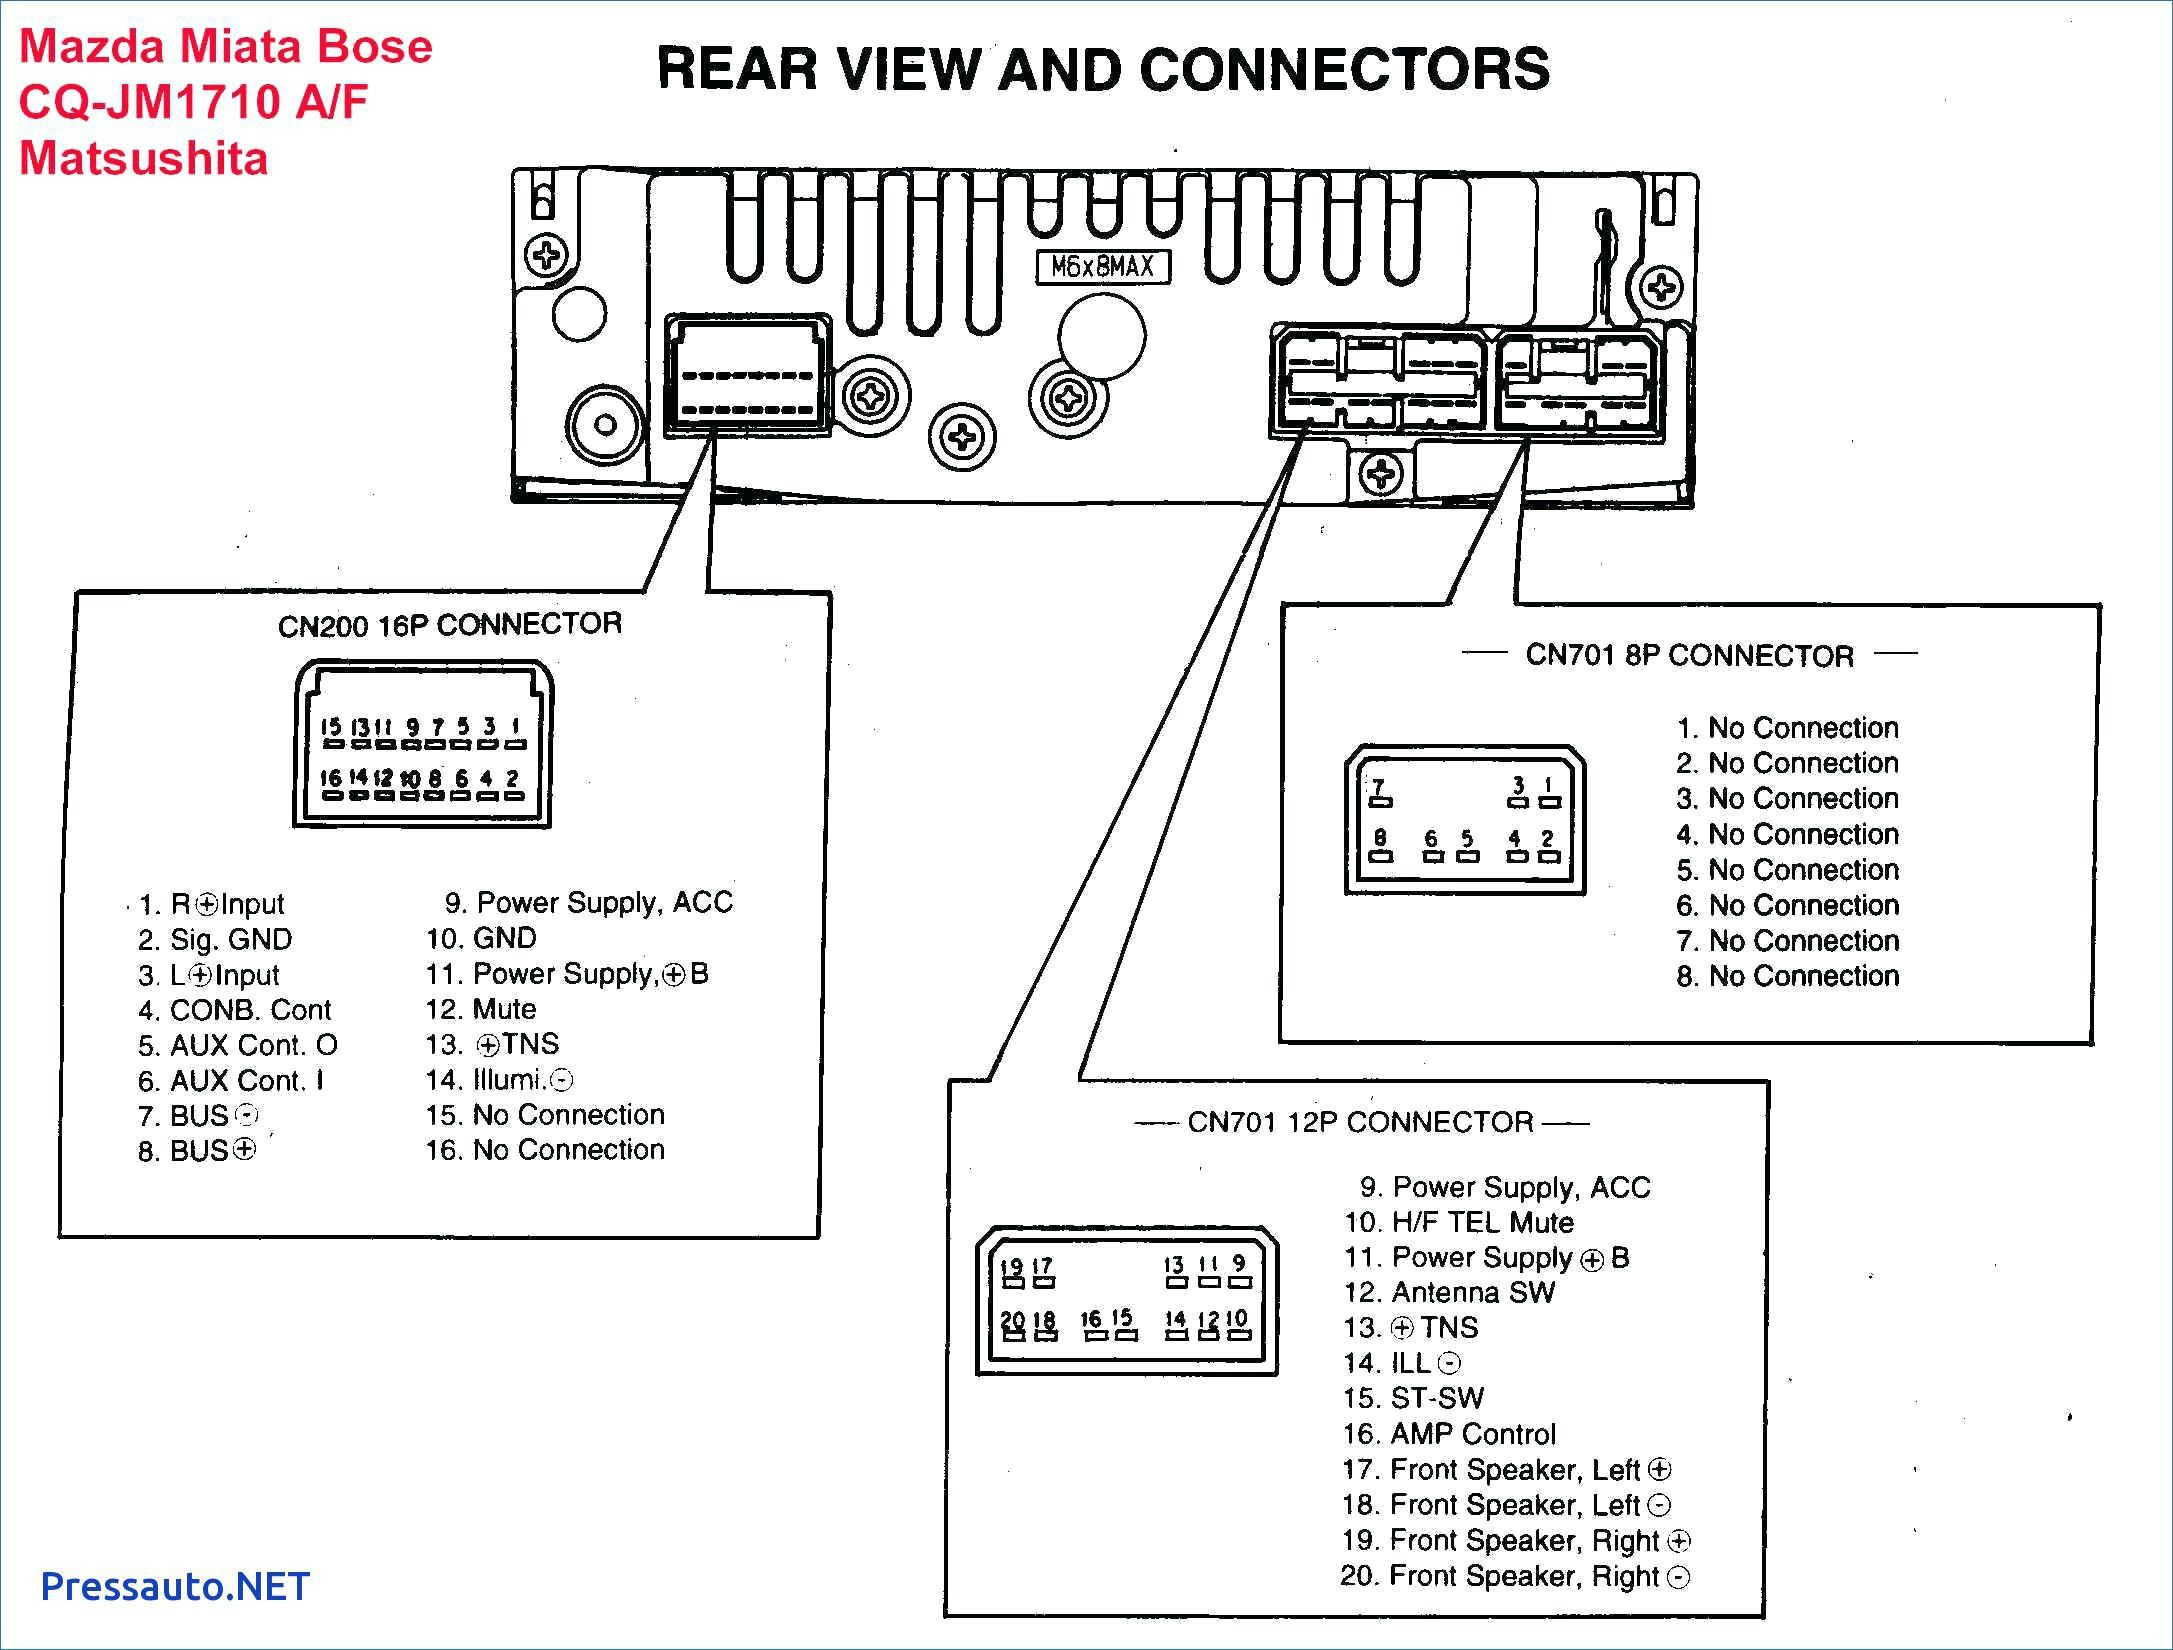 Bose Car Amplifier Wiring Diagram Http Bookingritzcarlton Info Bose Car Amplifier Wiring Diagram Car Stereo Sony Car Stereo Car Stereo Systems